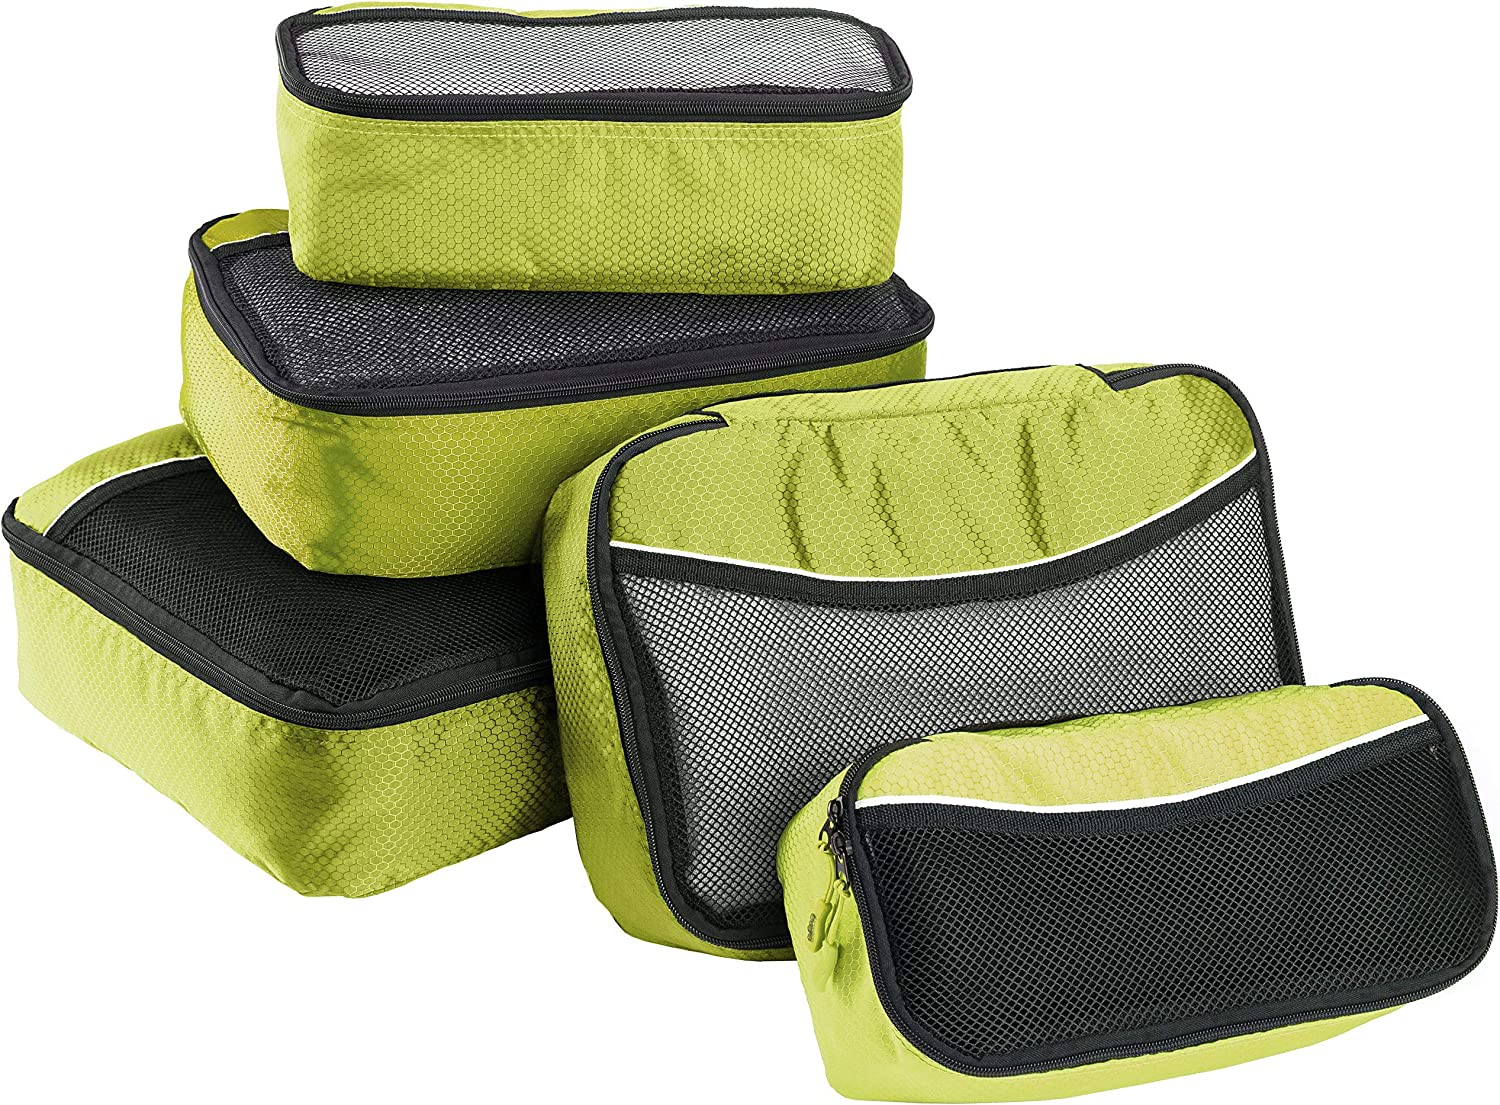 Bago Today's only Award Packing Cubes for Travel C - Suitcase Organizer Luggage